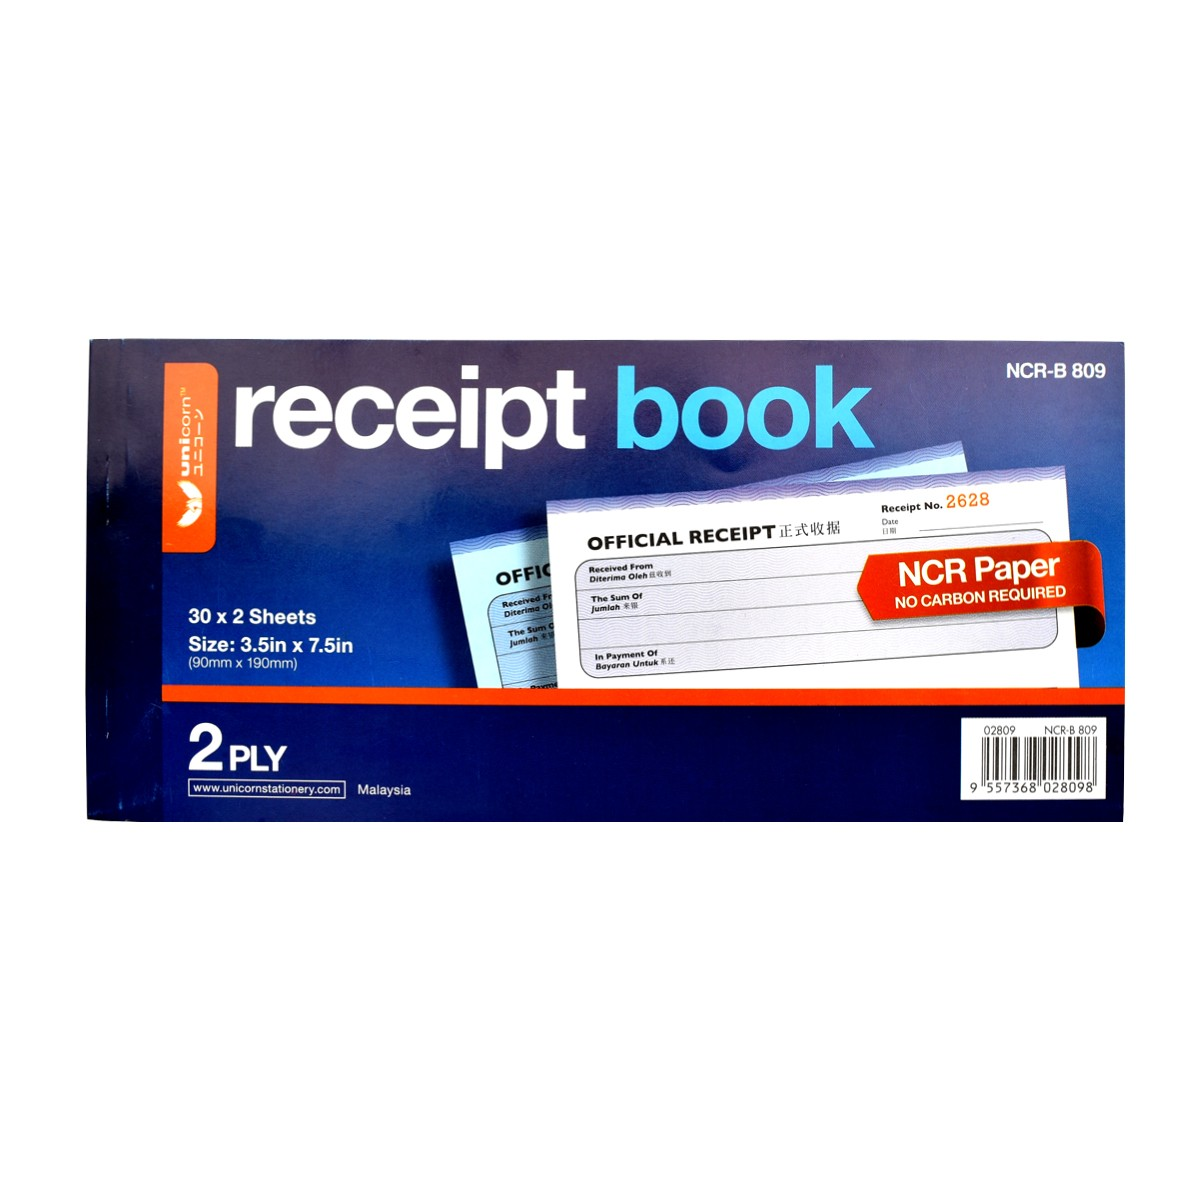 Unicorn Receipt Book NCR B809 (20 books)